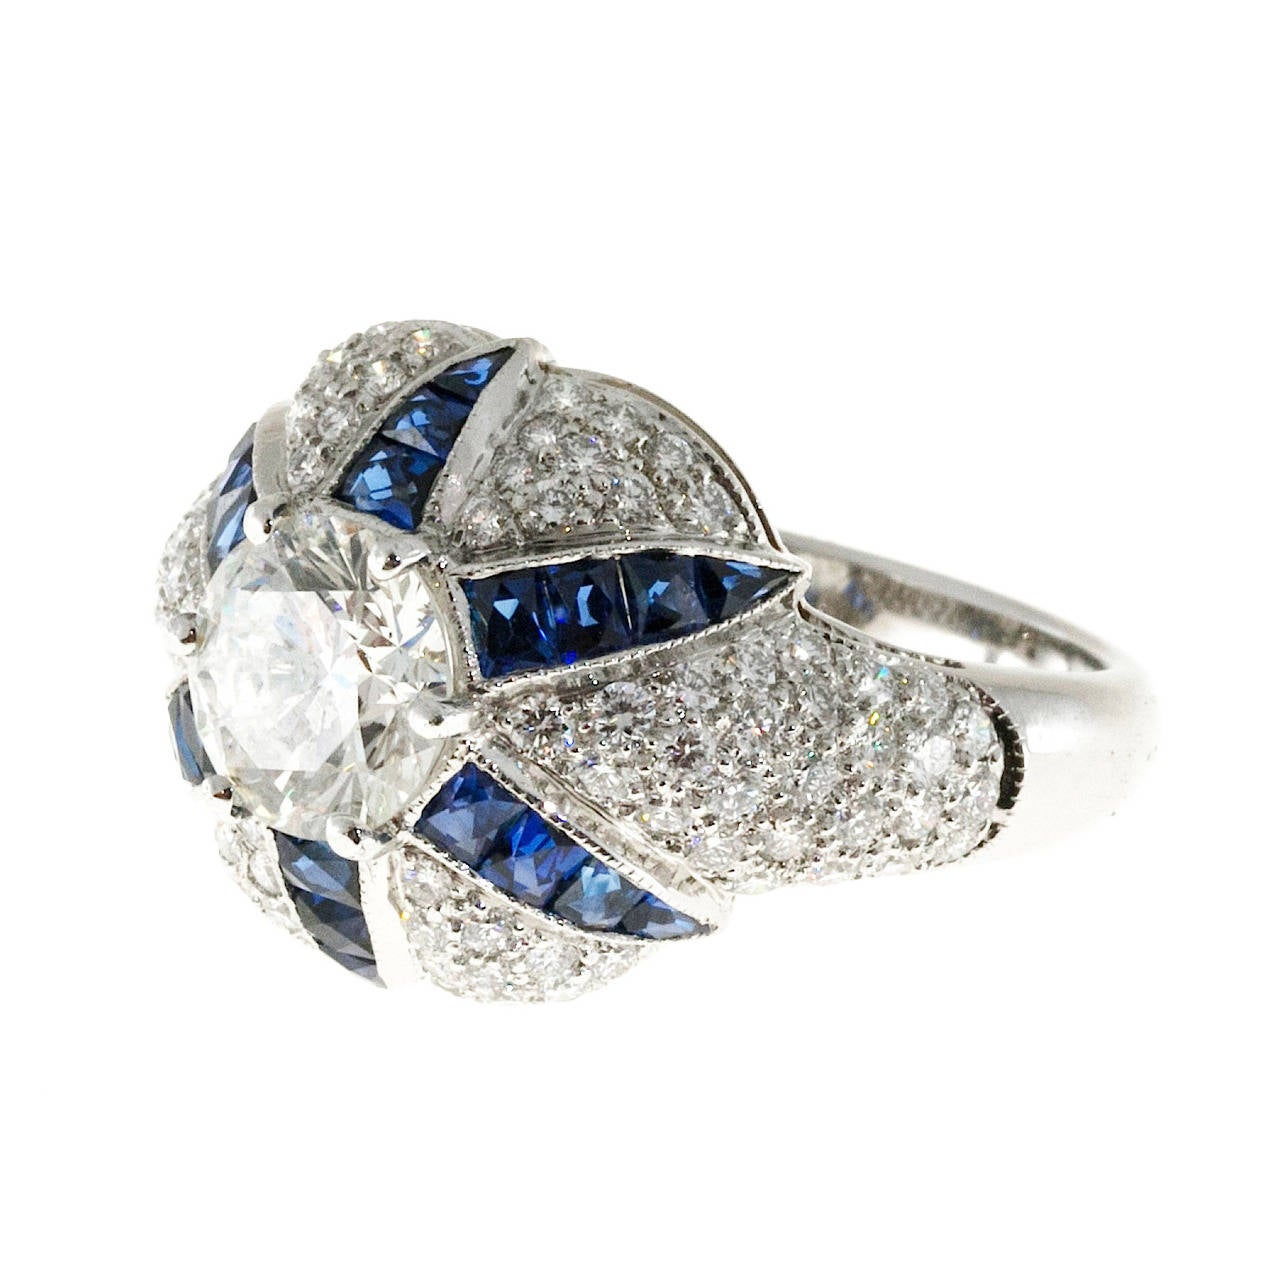 Calibre Sapphire Diamond Platinum Domed Ring